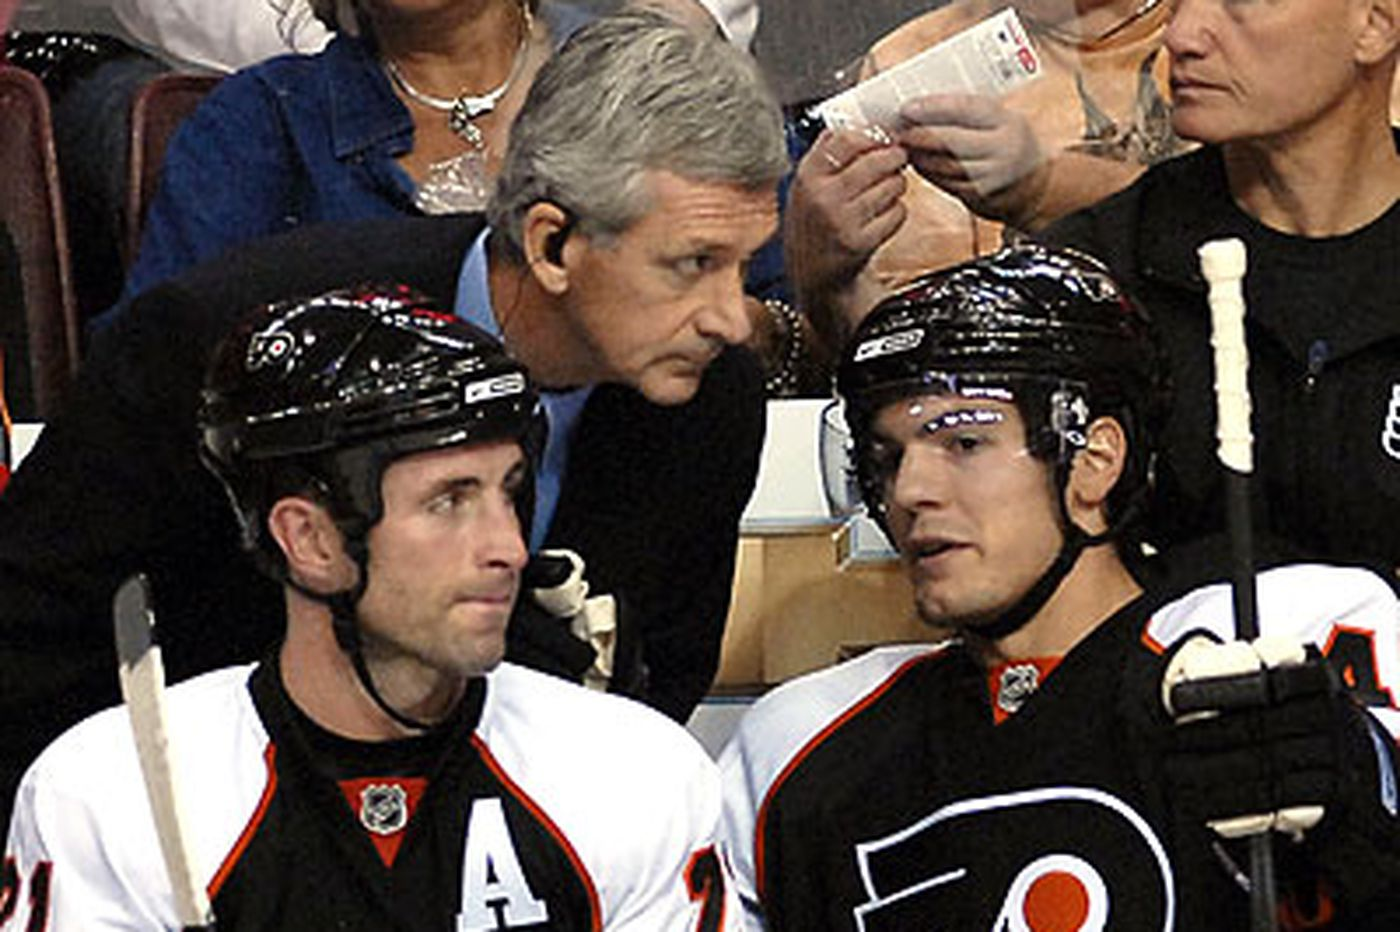 In 5th stint with Flyers, Murray coaching AHL team